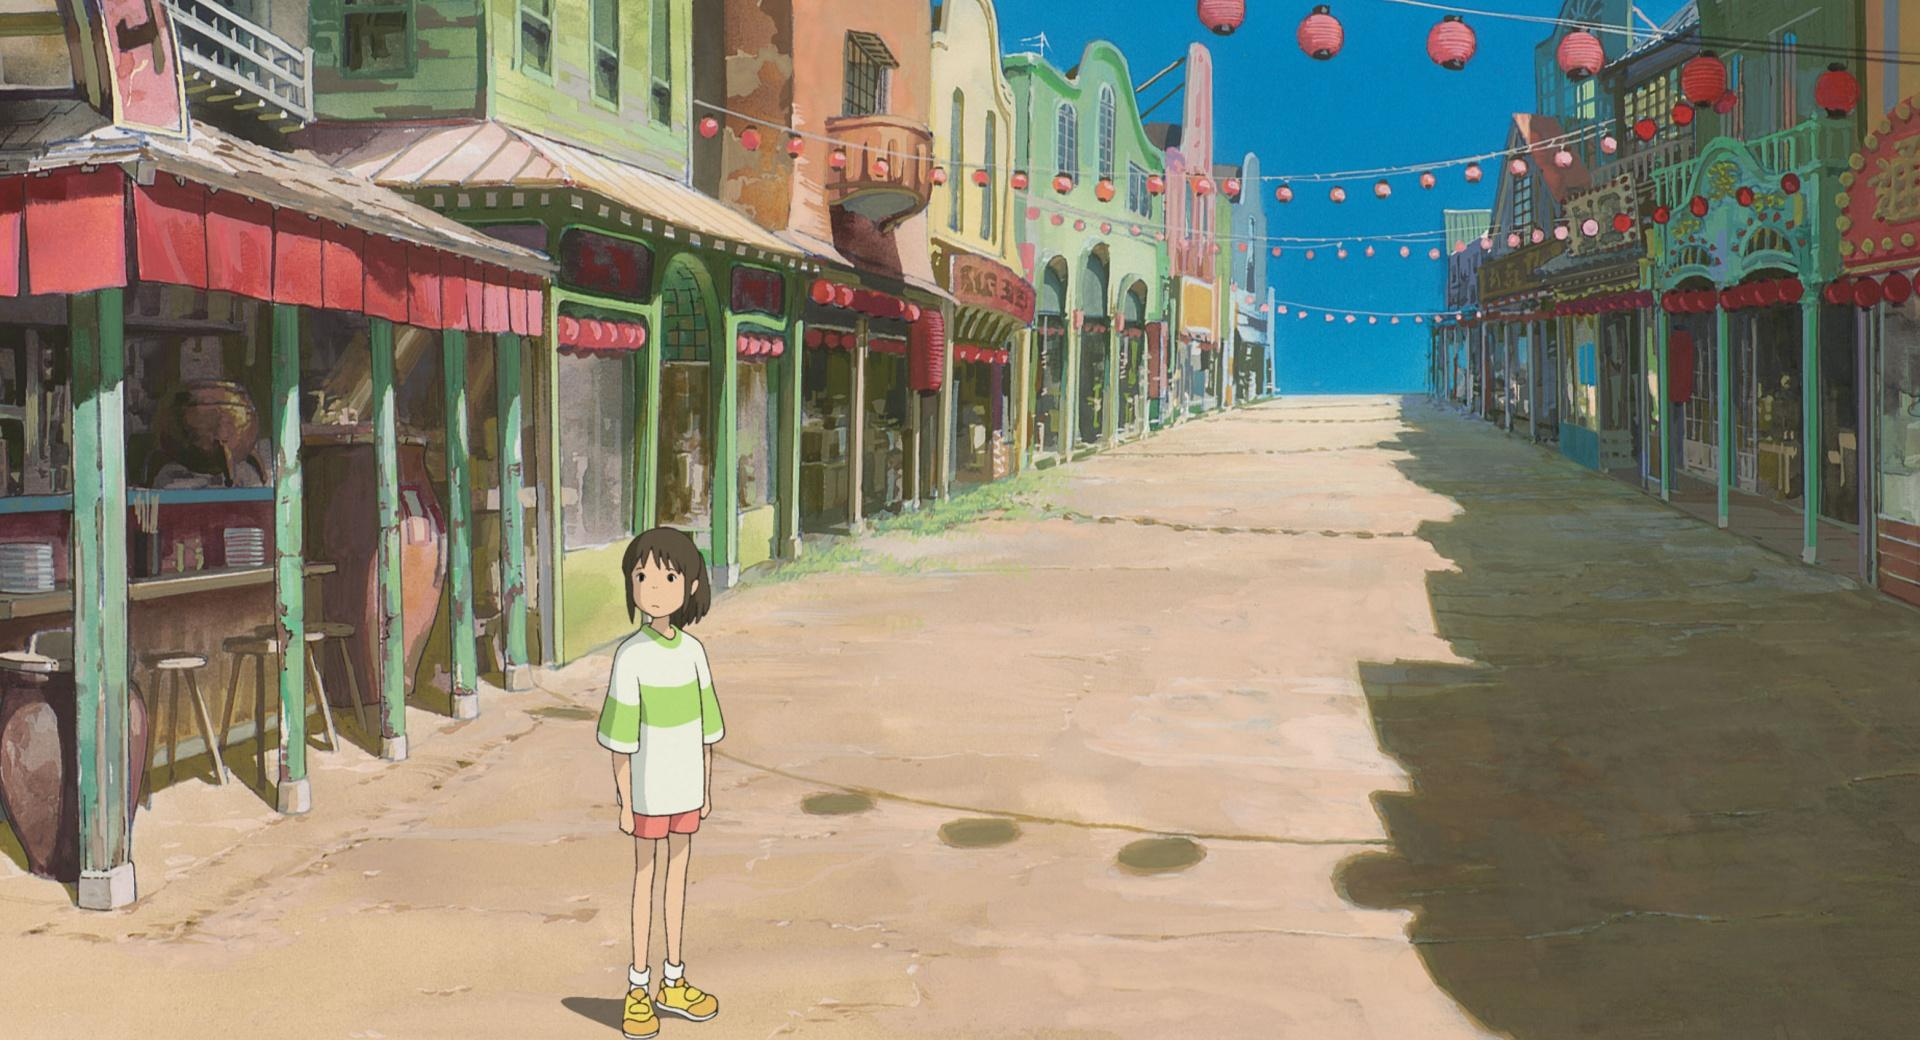 Chihiro On The Street wallpapers HD quality